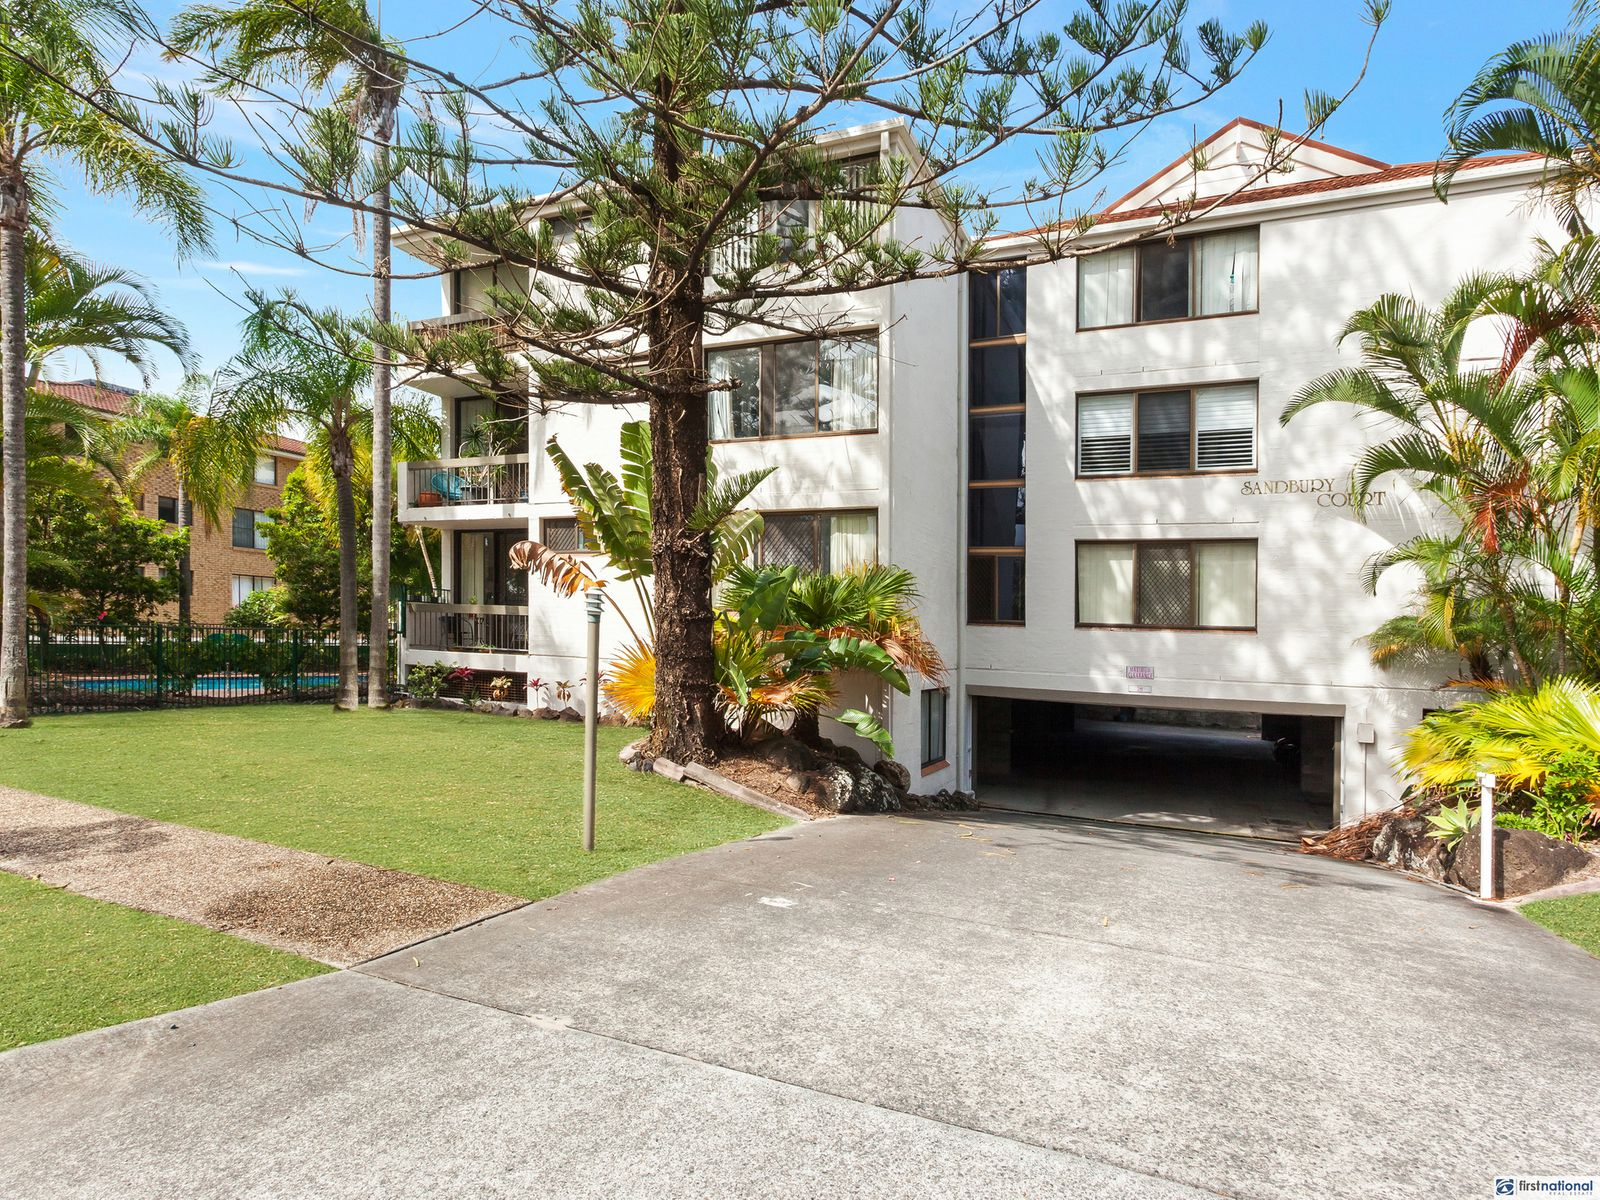 9/13 Federation Avenue, Broadbeach, QLD 4218